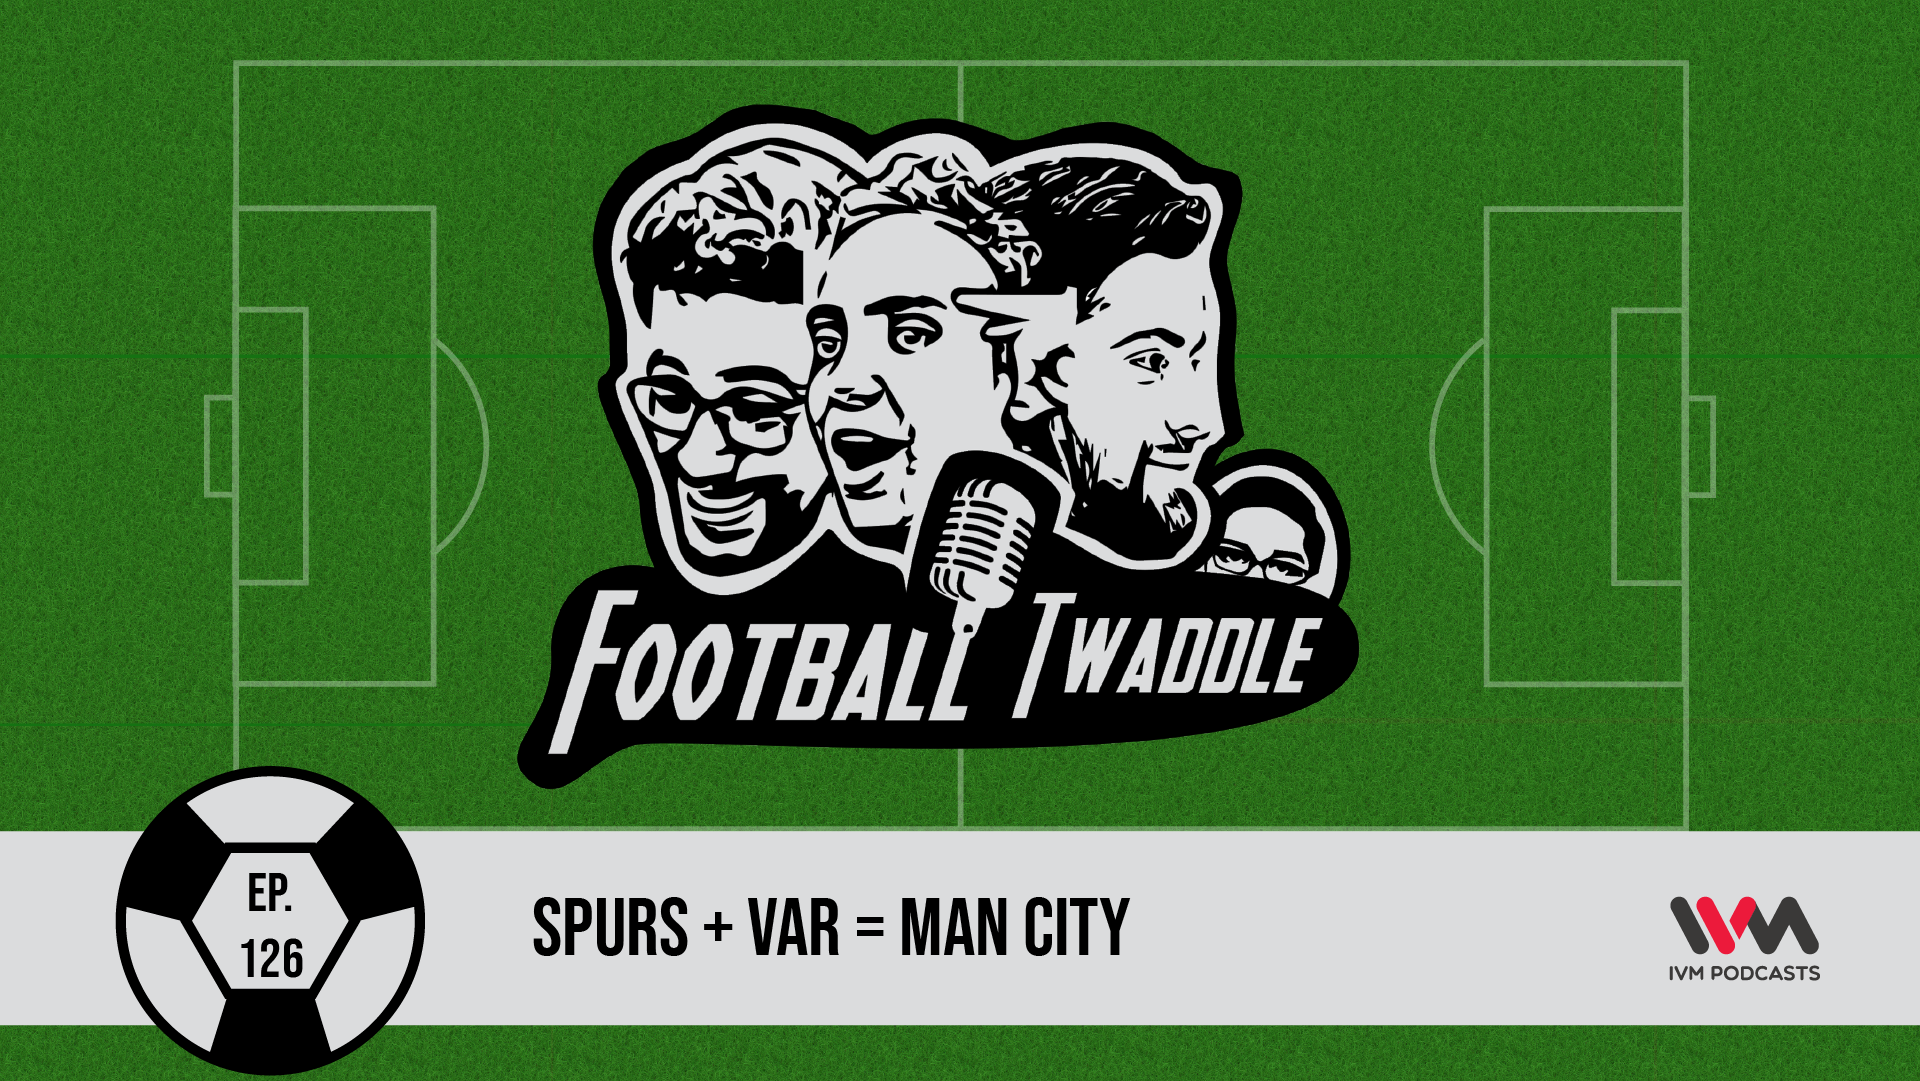 FootballTwaddleEpisode126.png